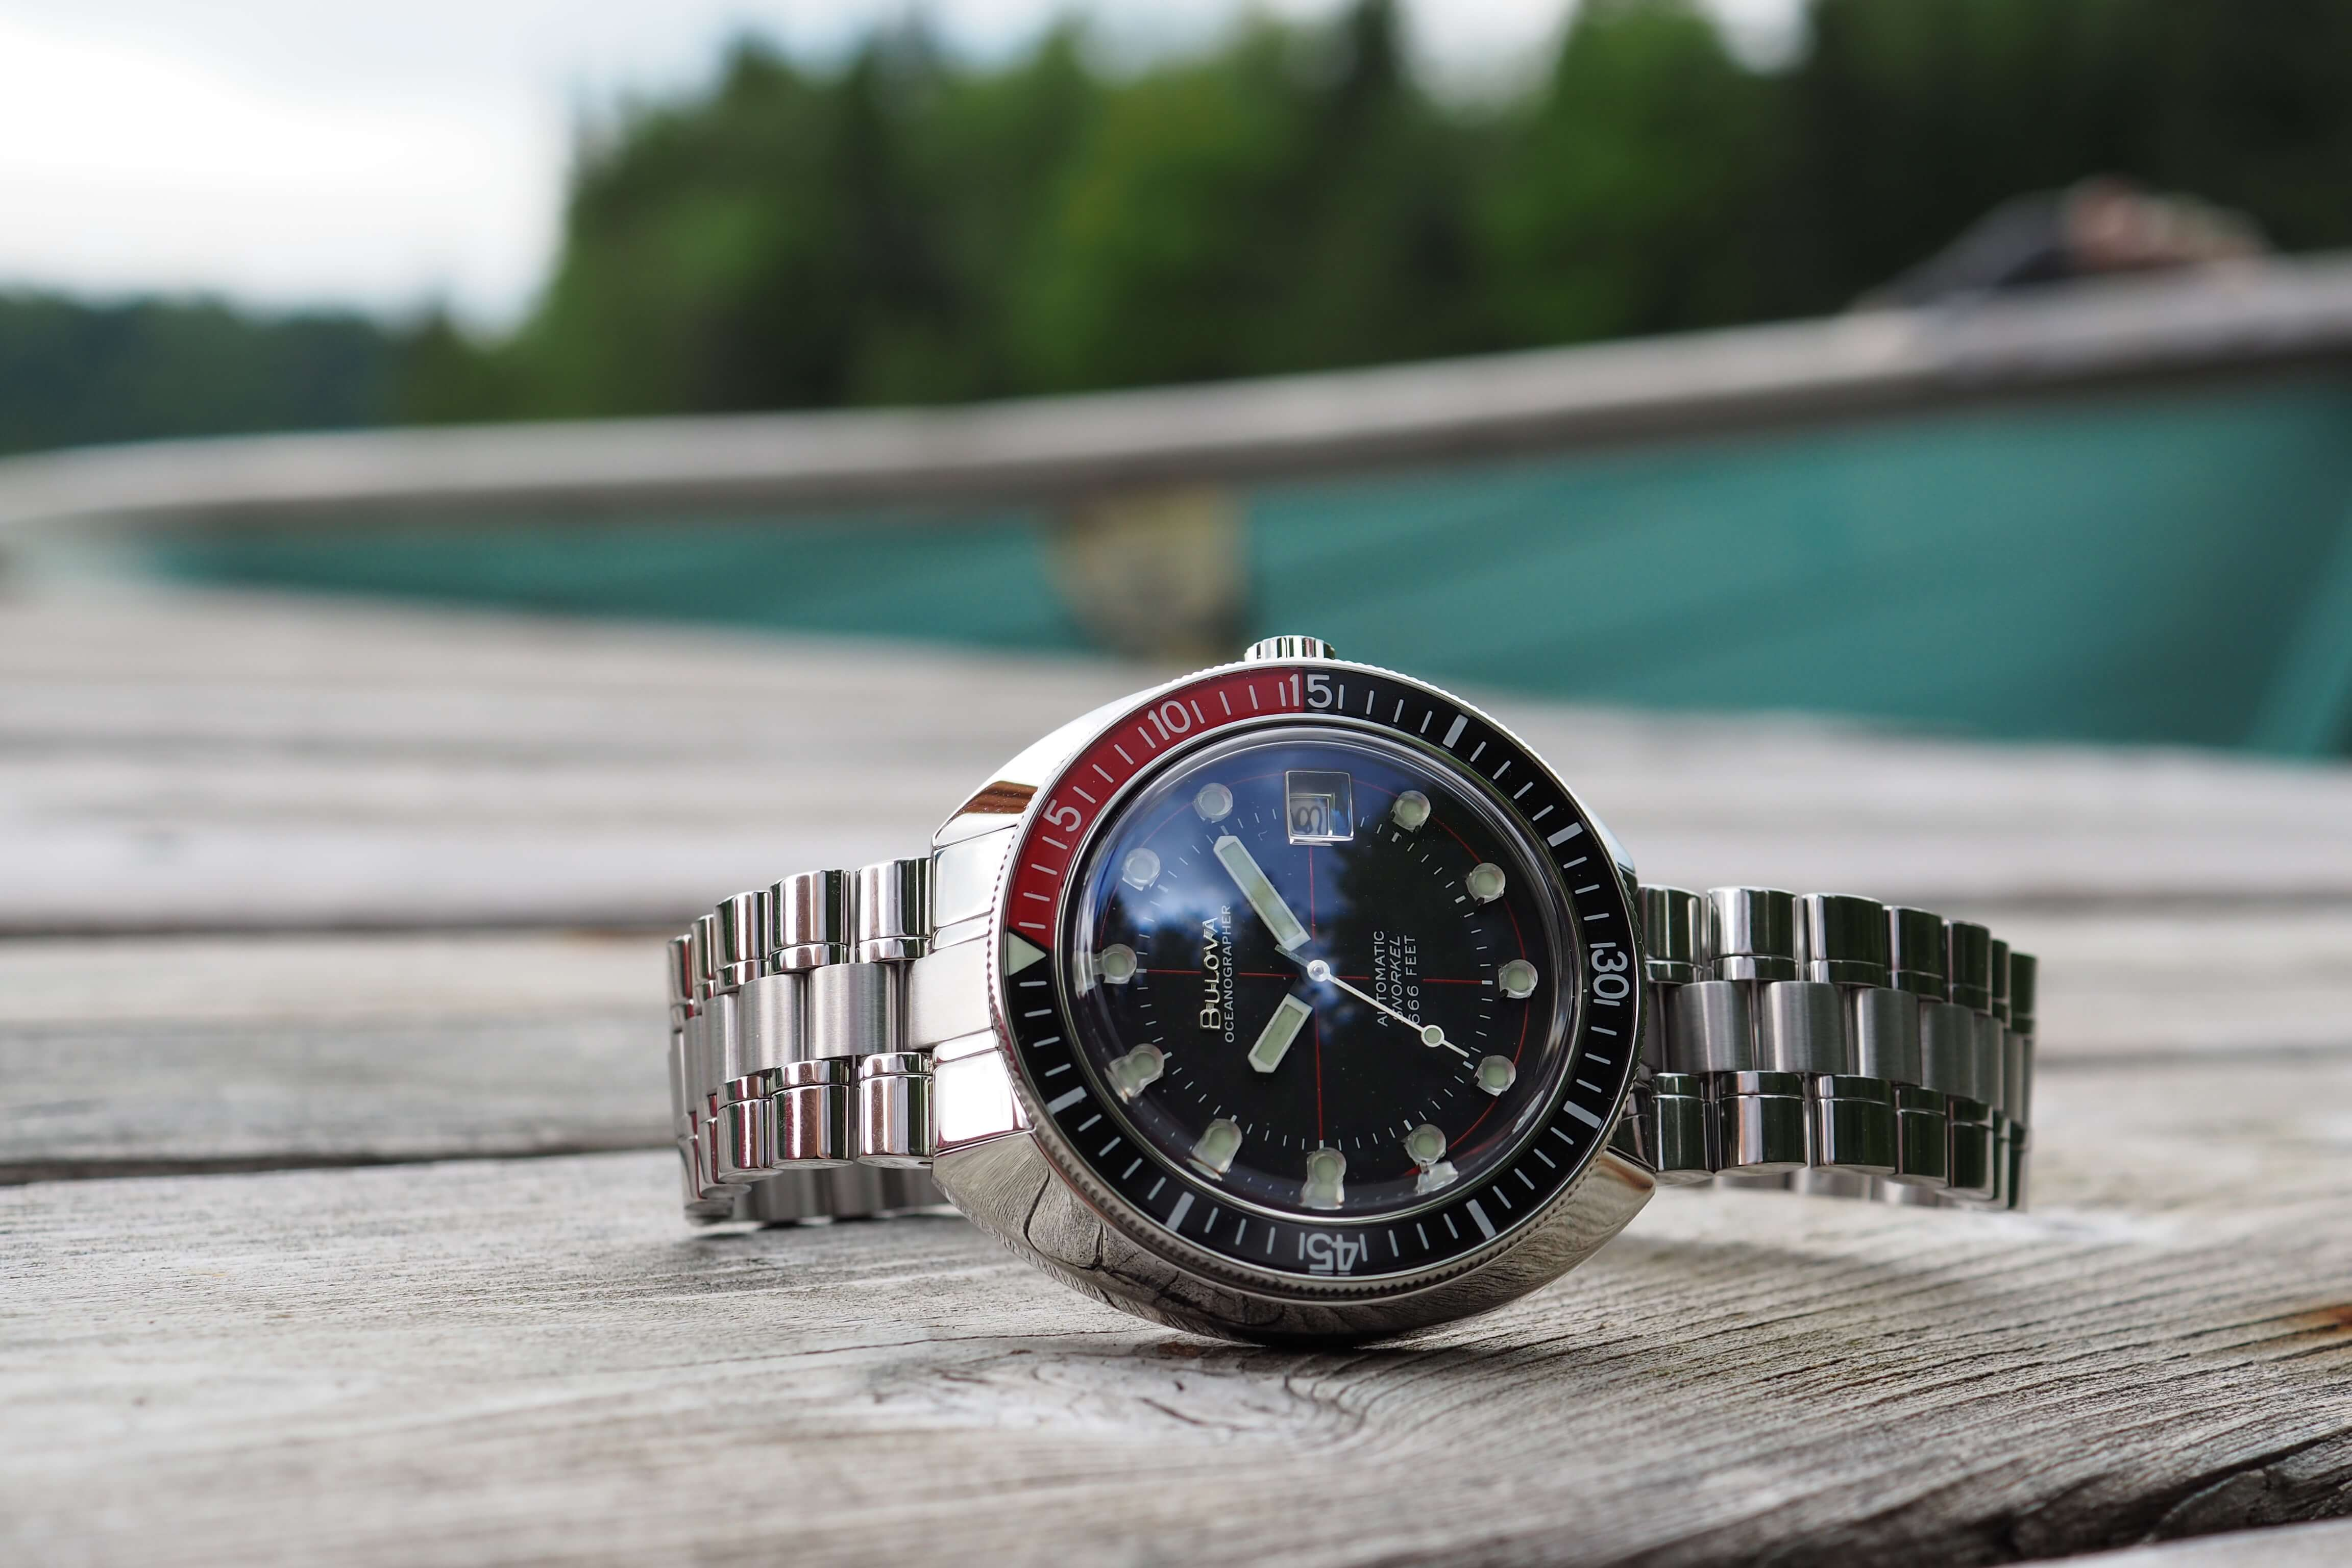 Bulova Oceanographer Devil Diver Watch Review